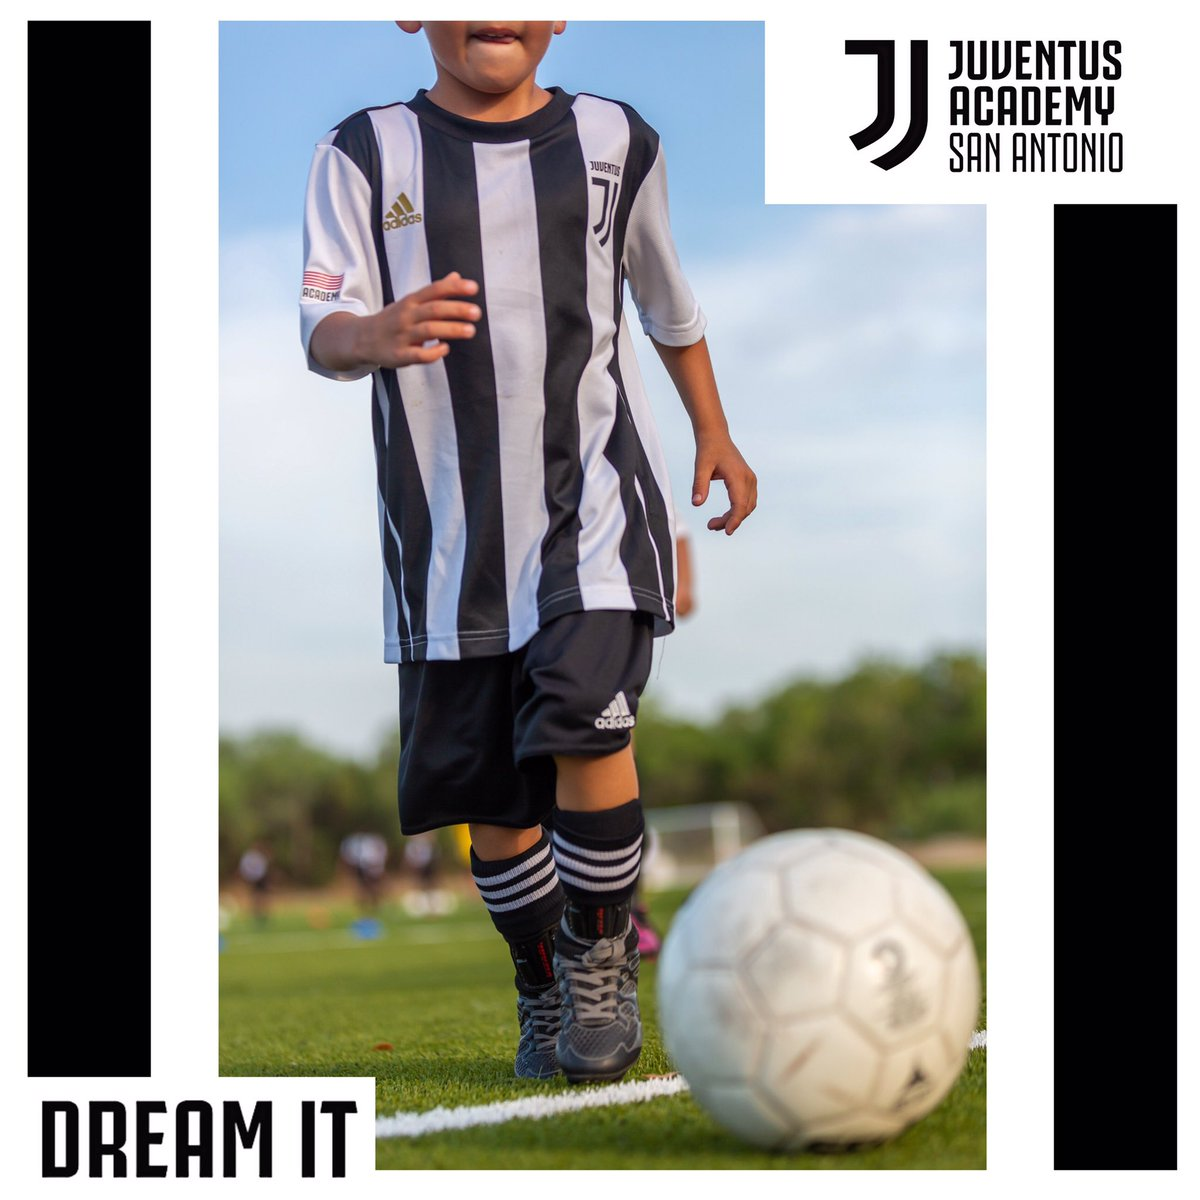 At @juventusacademysa, dream it and #makeithappen.  <br>http://pic.twitter.com/HcrY7C5CqM